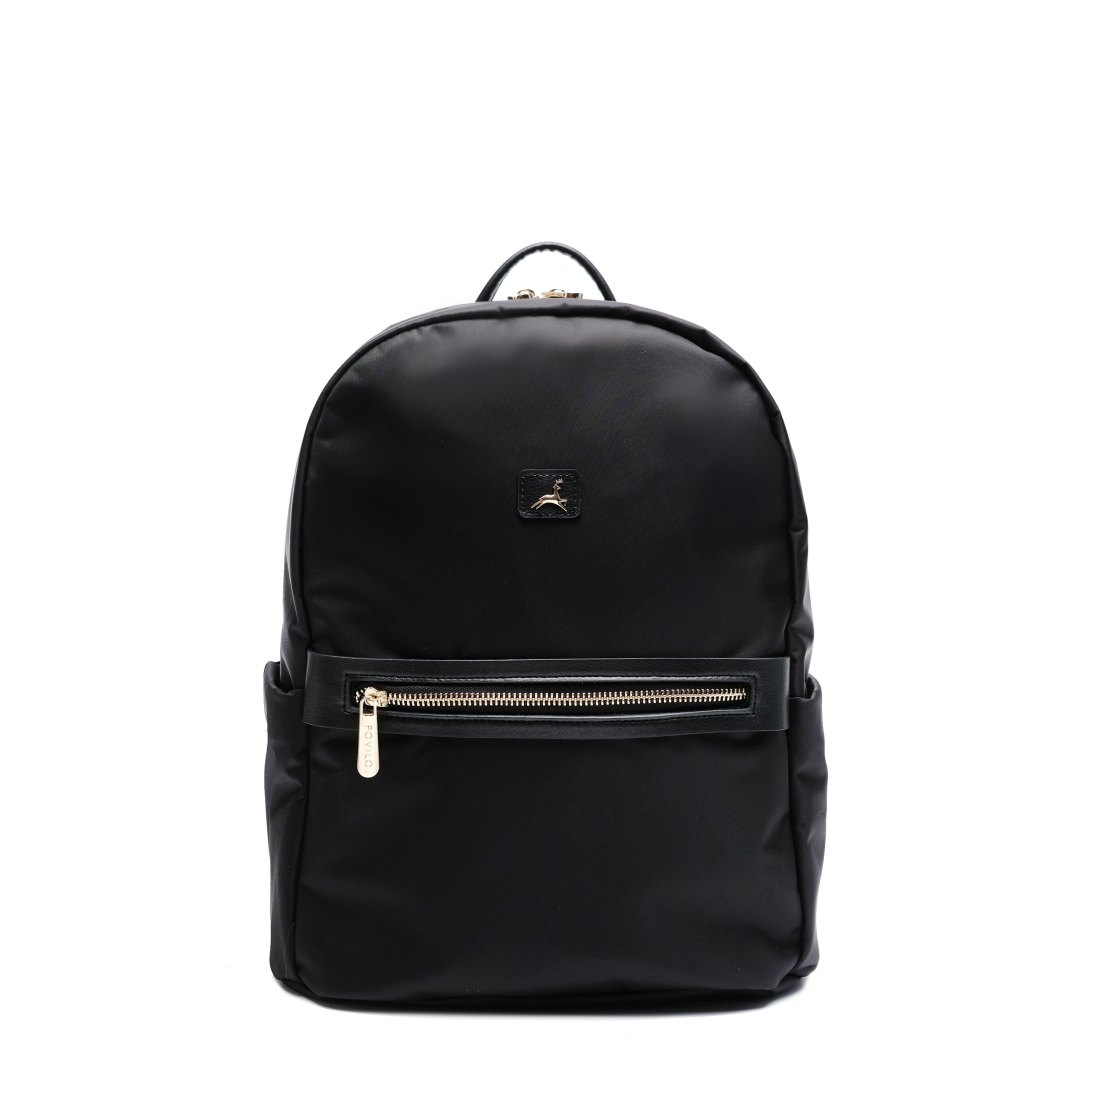 habit-small-black-1